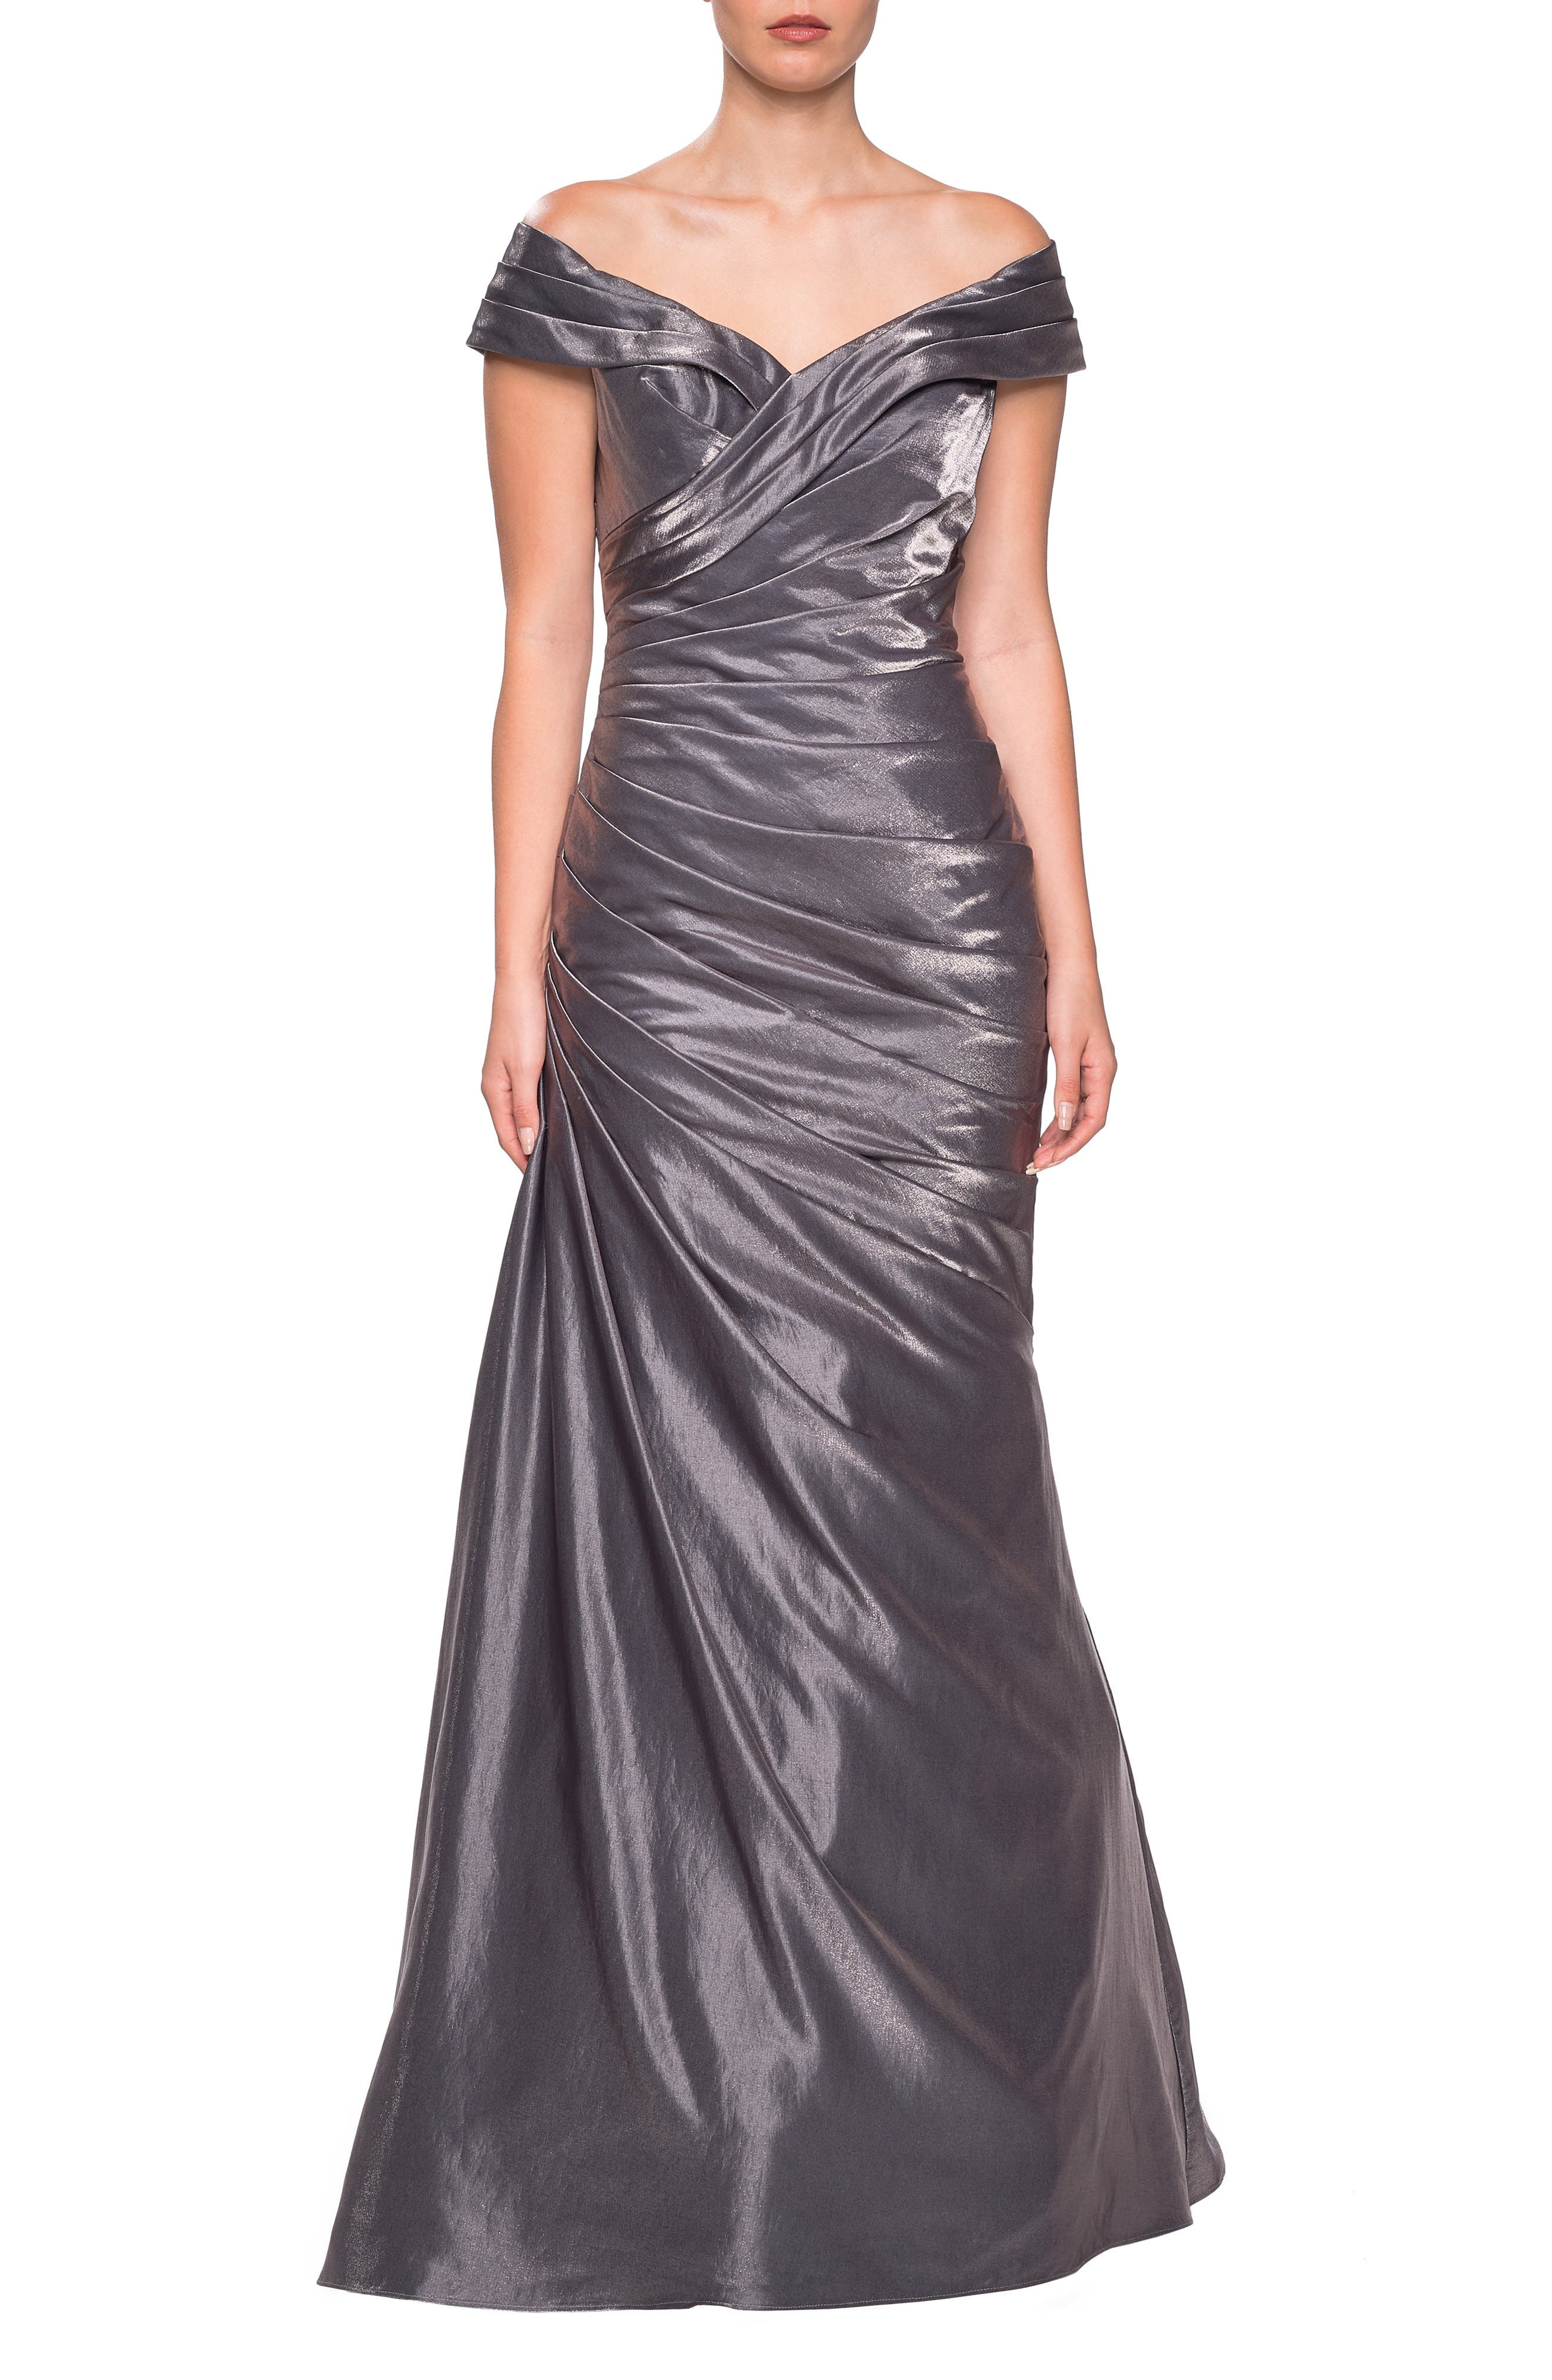 LA FEMME Ruched Two-Tone Satin Gown, Main, color, PLATINUM